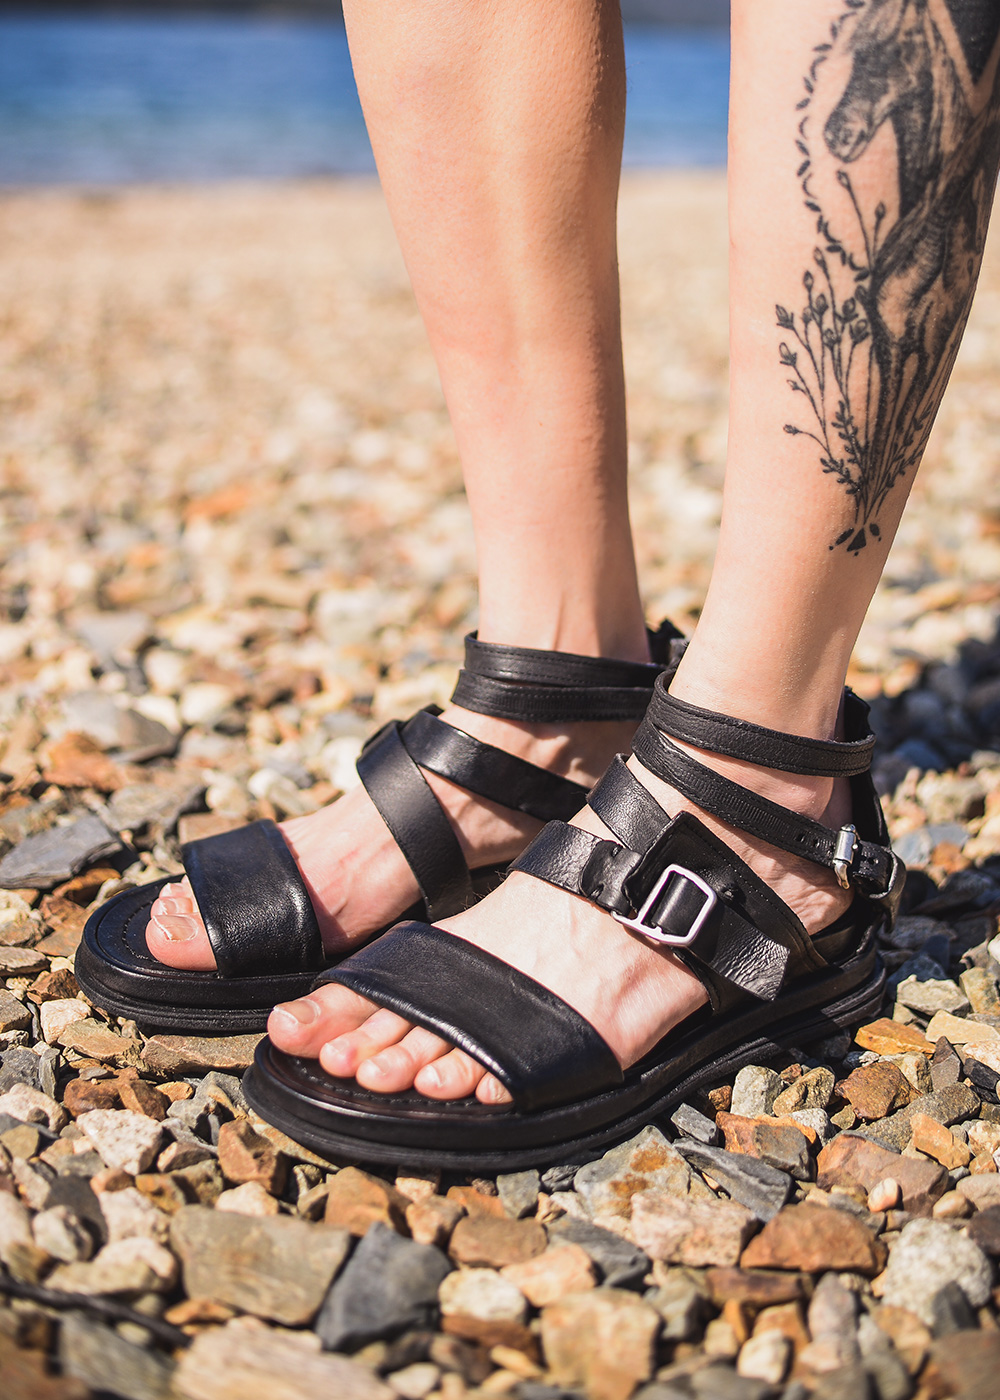 AS98 Sicily Sandals by Nomads Hemp Wear